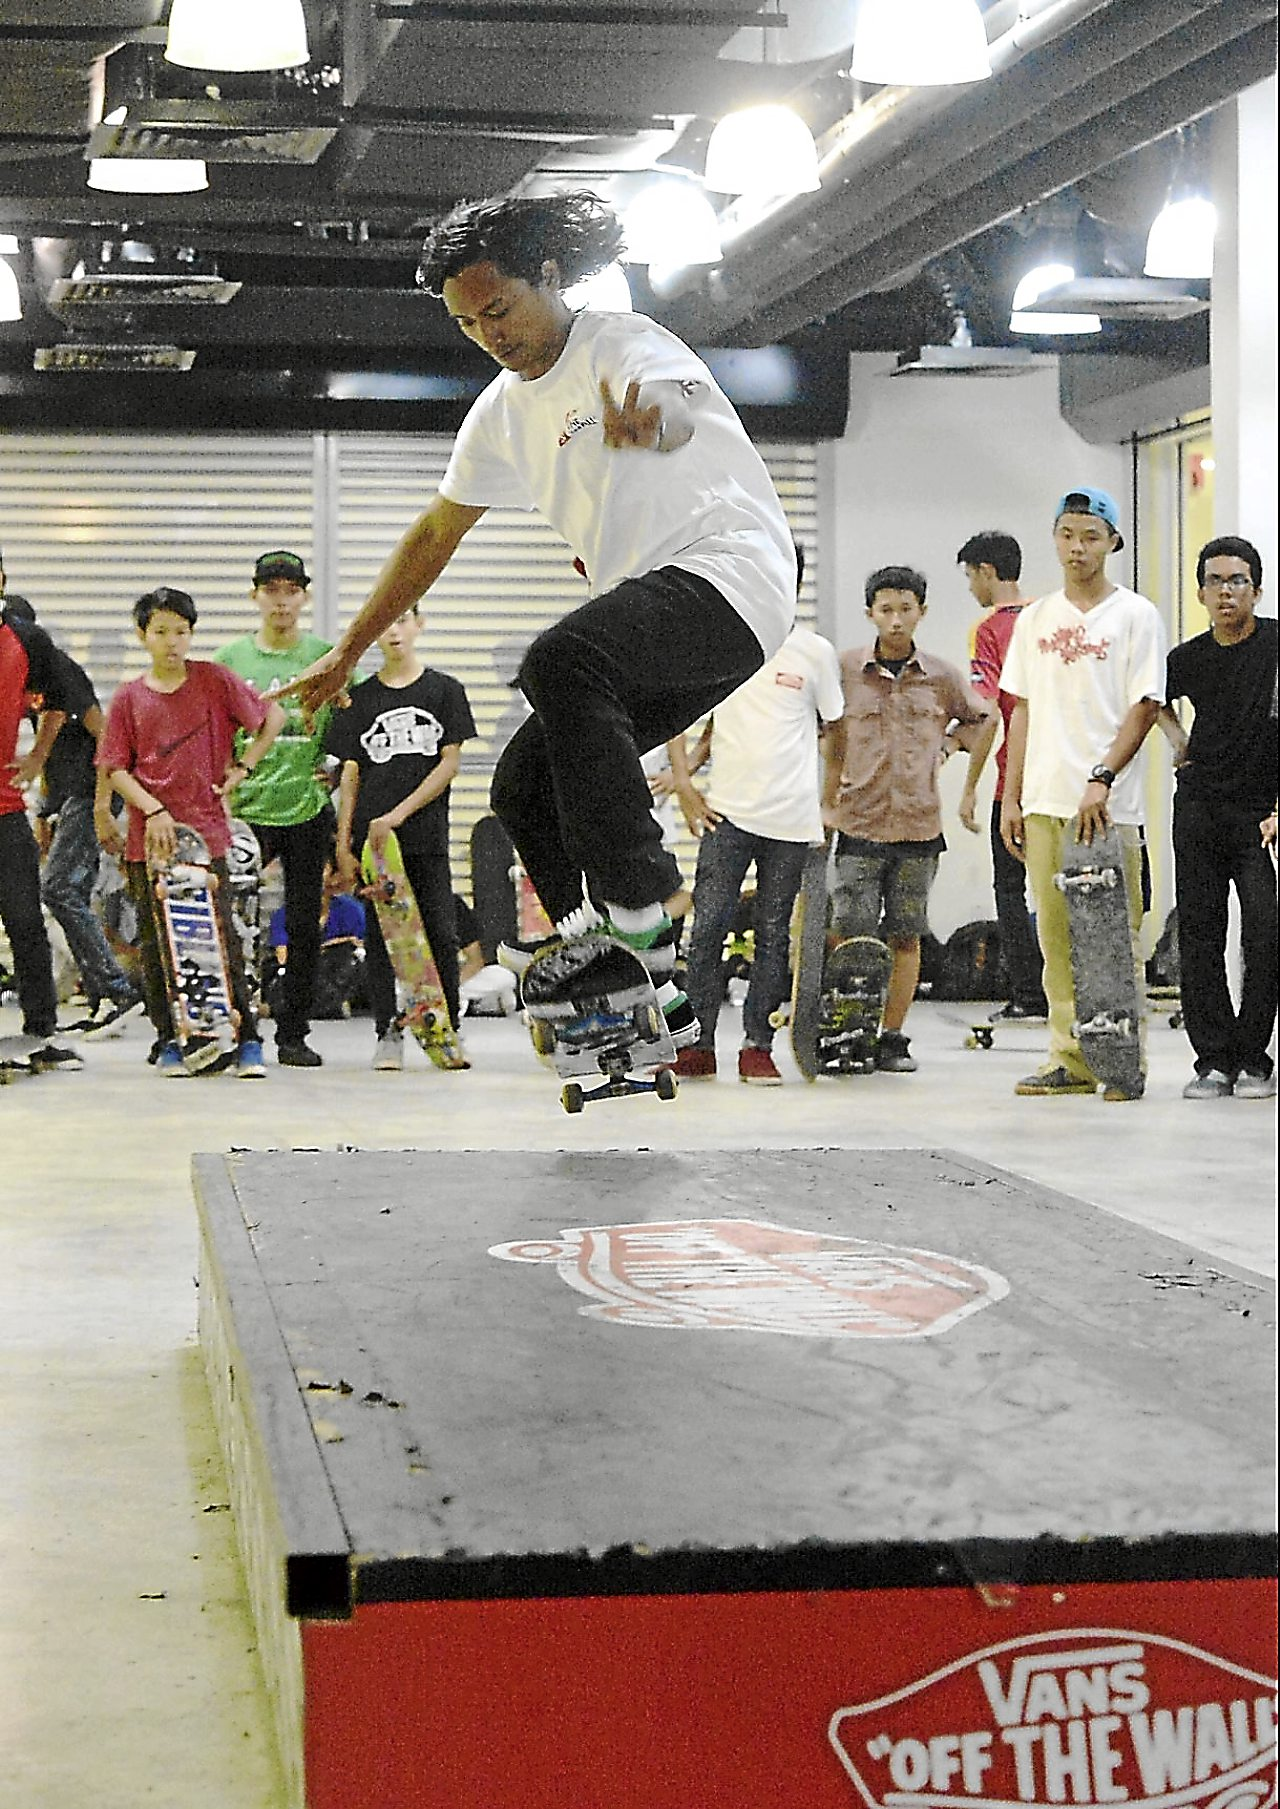 All aboard for skater culture in Malaysia   The Star Online